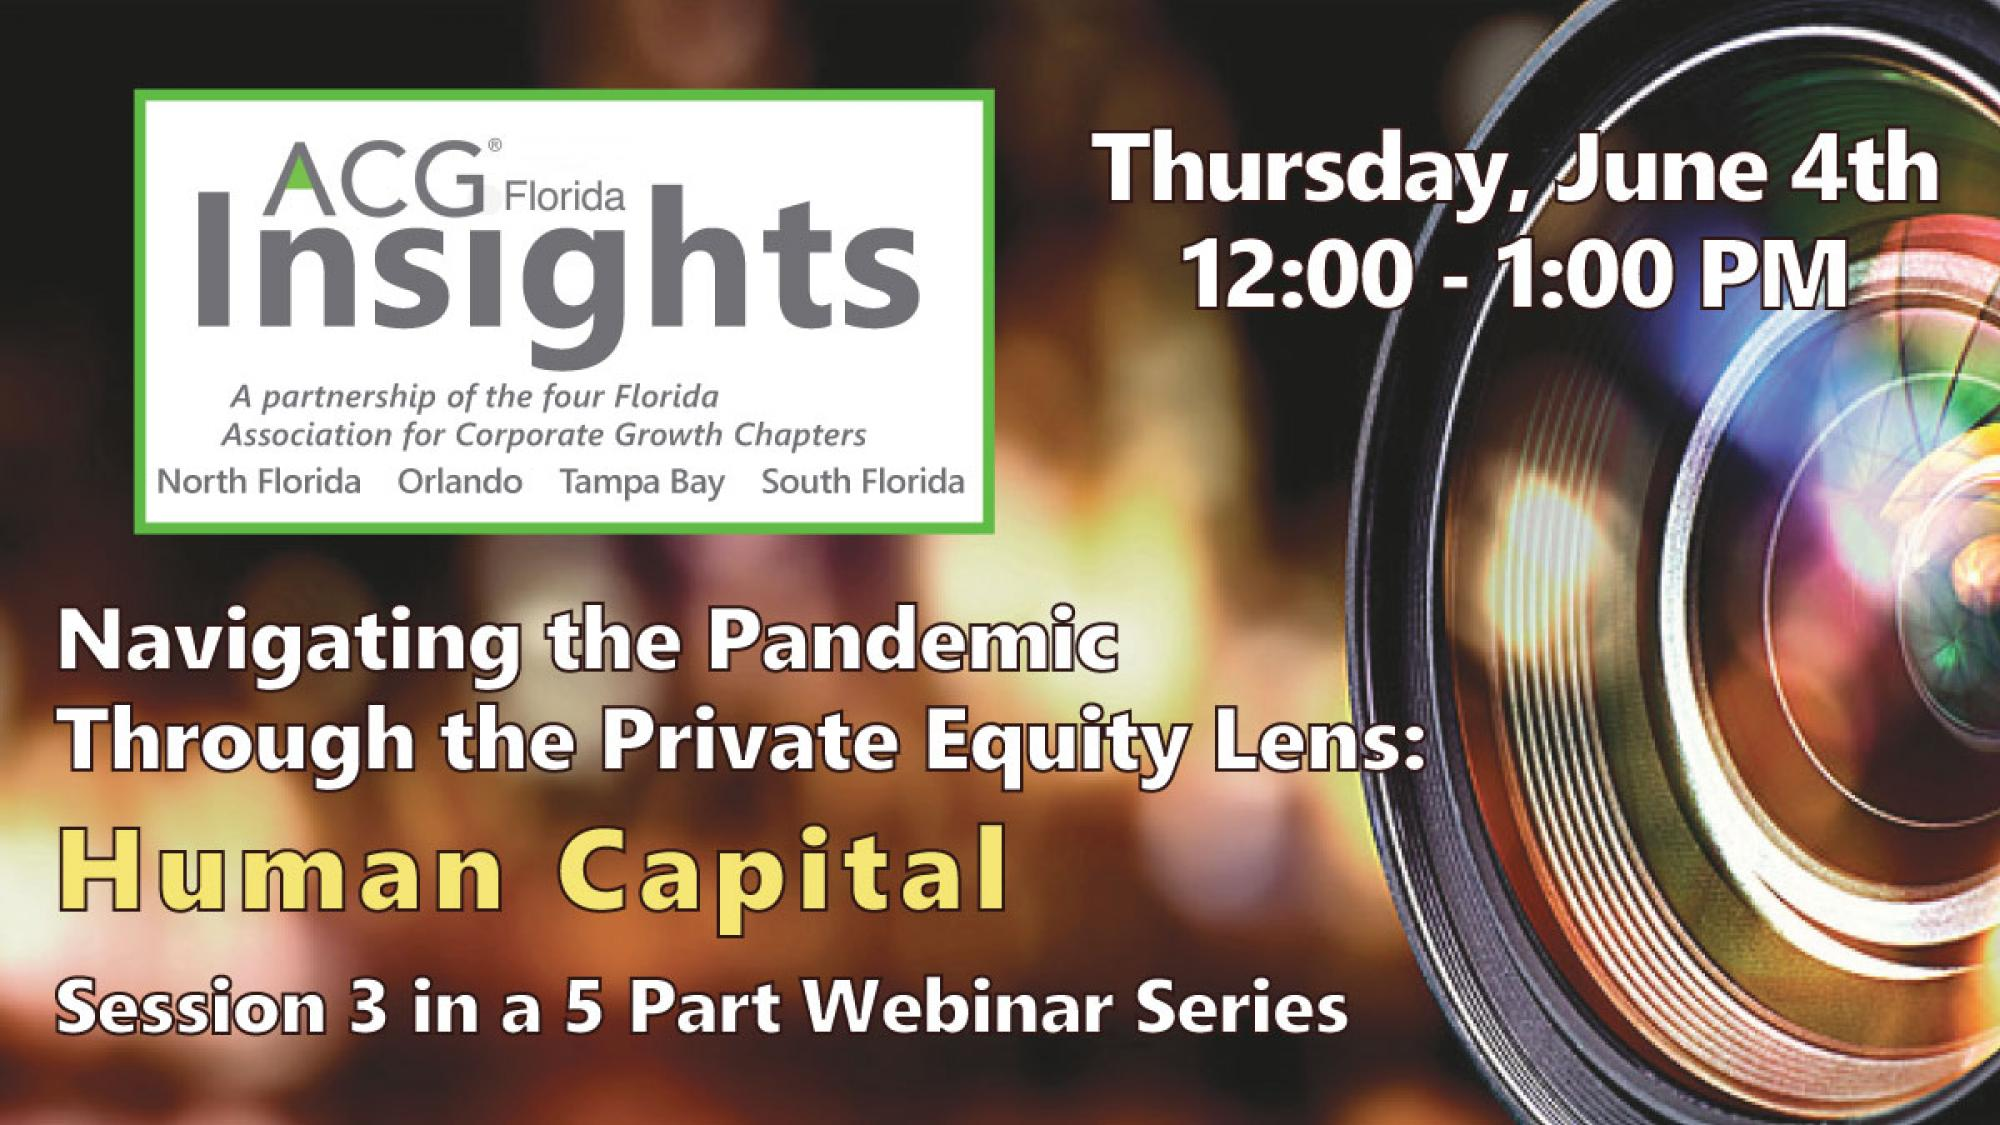 Camera Lens. ACG Insights Navigating the Pandemic Through the Private Equity Lens: Human Capital